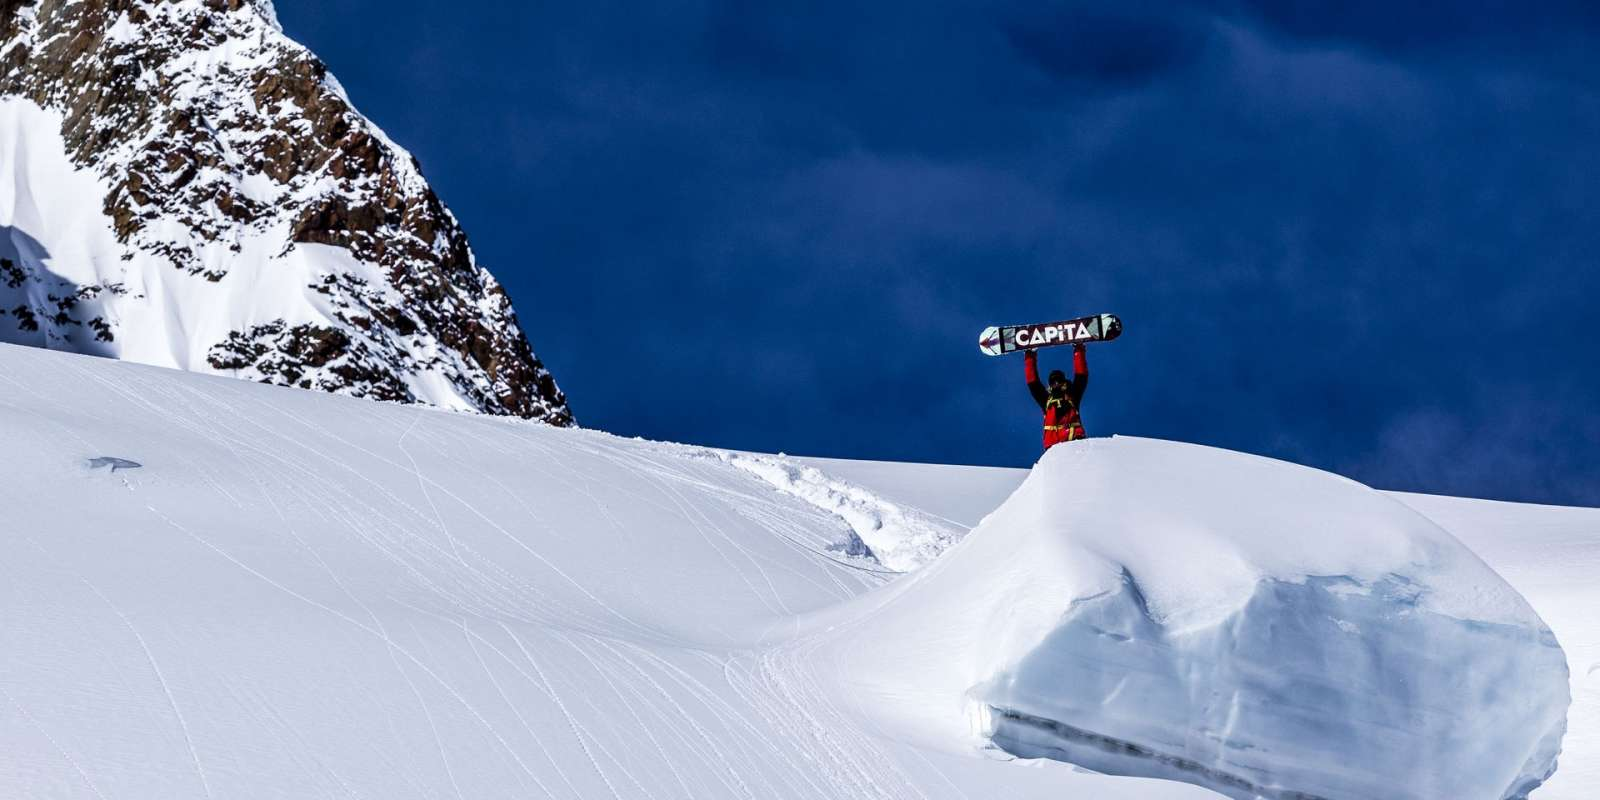 Simon Gruber in action at Click On The Mountain, Italy